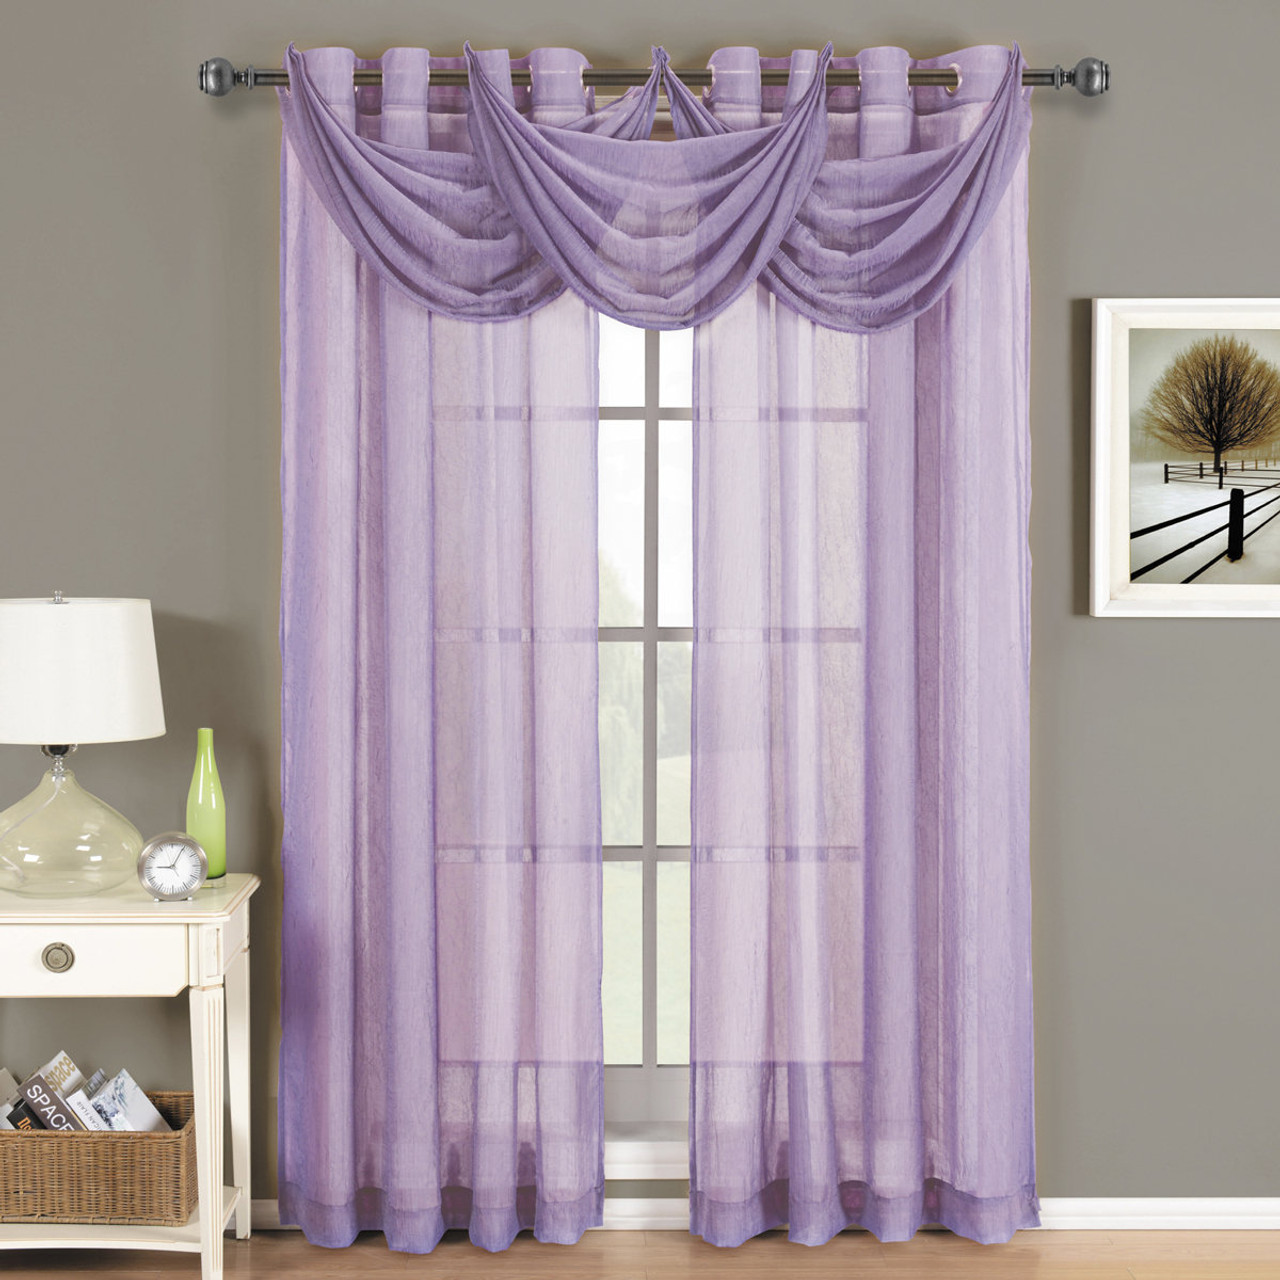 Lavender Sheer Curtains Abri Grommet Crushed Sheer Curtain Panel Single